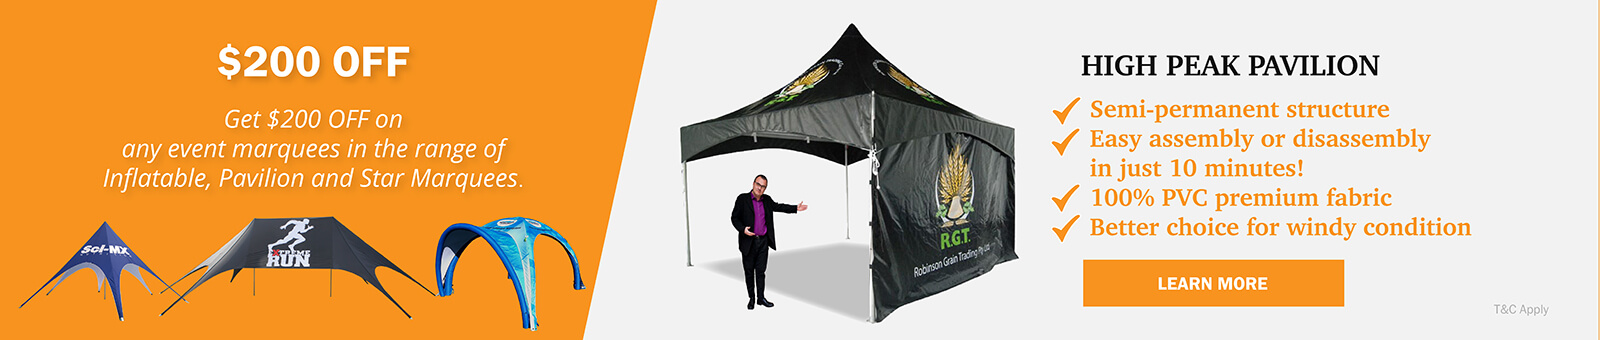 Inflatable Gazebos Shelters Amp Spider Domes For Sale